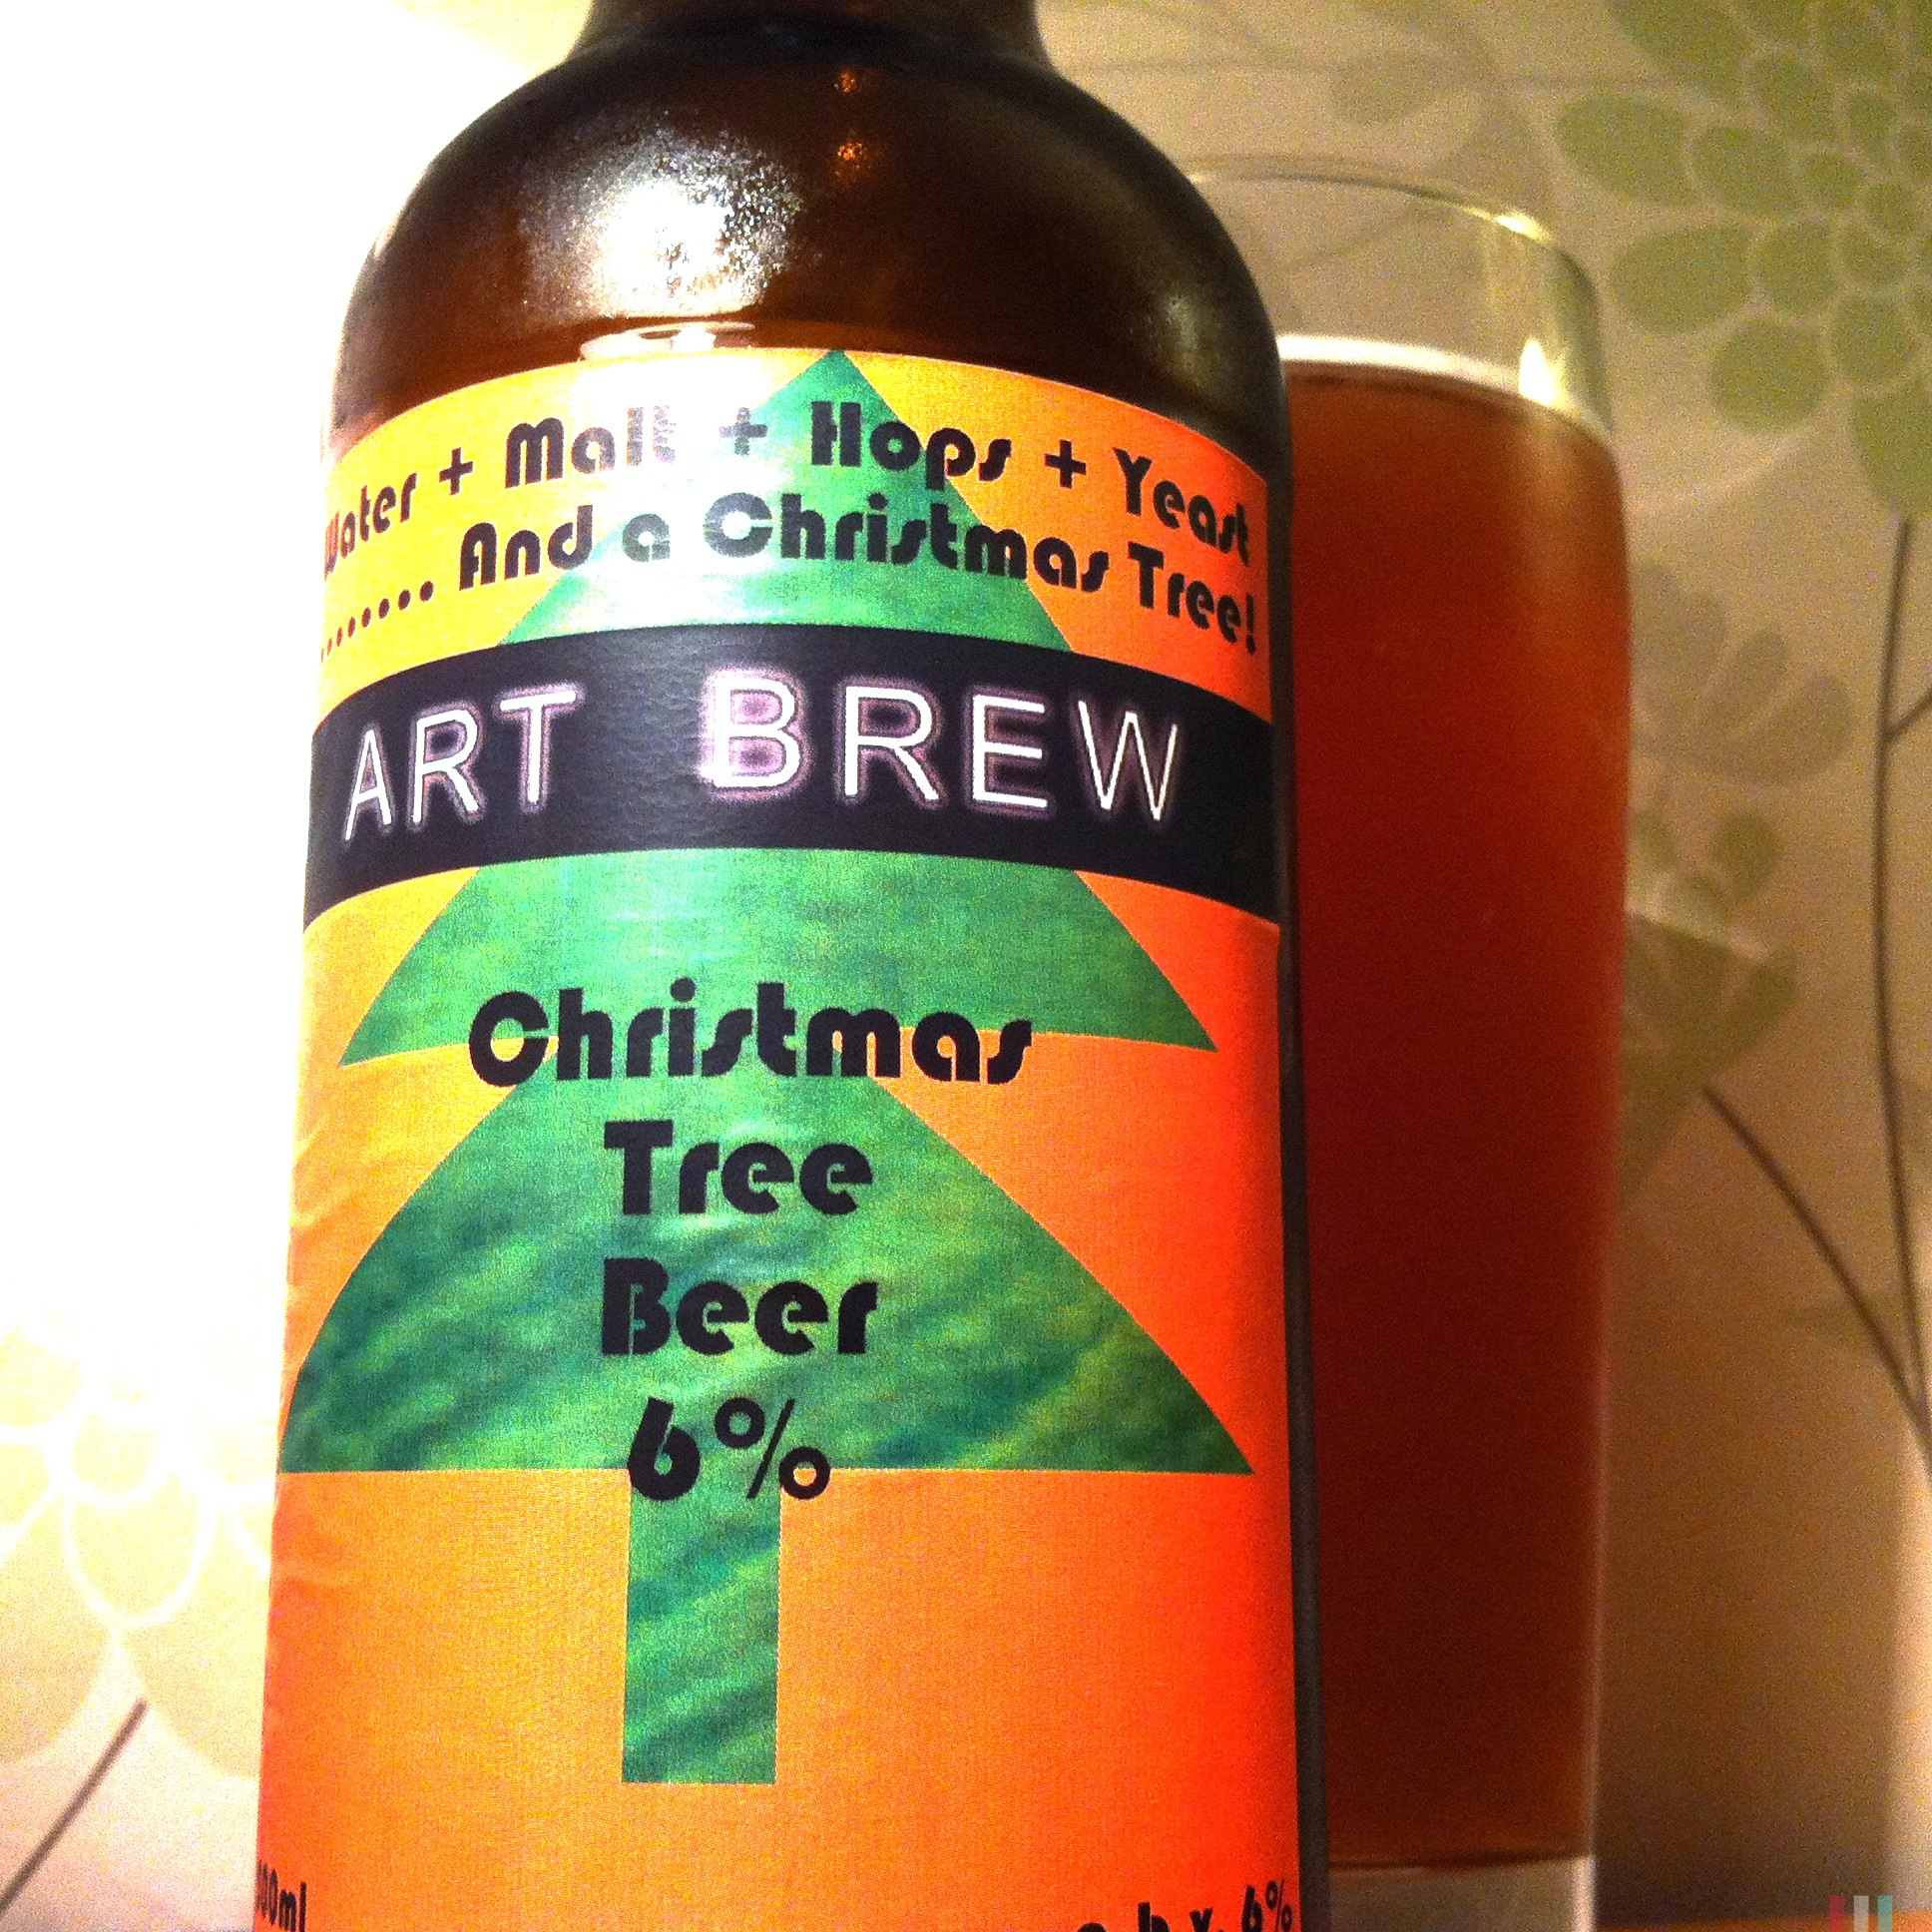 Art Brew Christmas Tree Beer (6%) - 1248.0KB